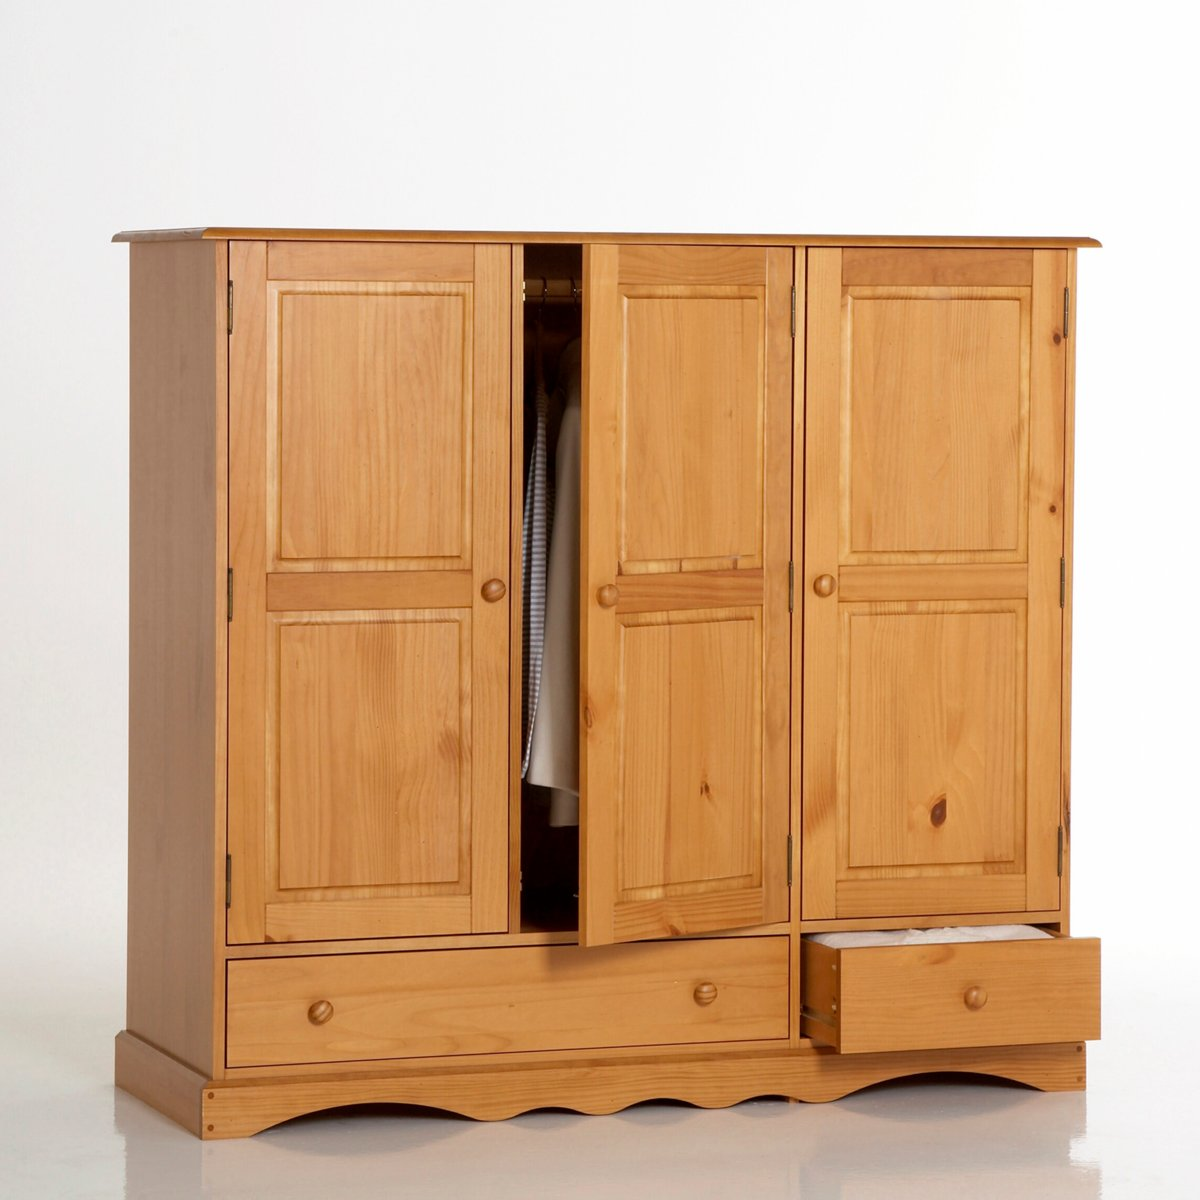 armoire la redoute armoire pin massif h140 cm penderie et ling re prix 249 50 euros. Black Bedroom Furniture Sets. Home Design Ideas